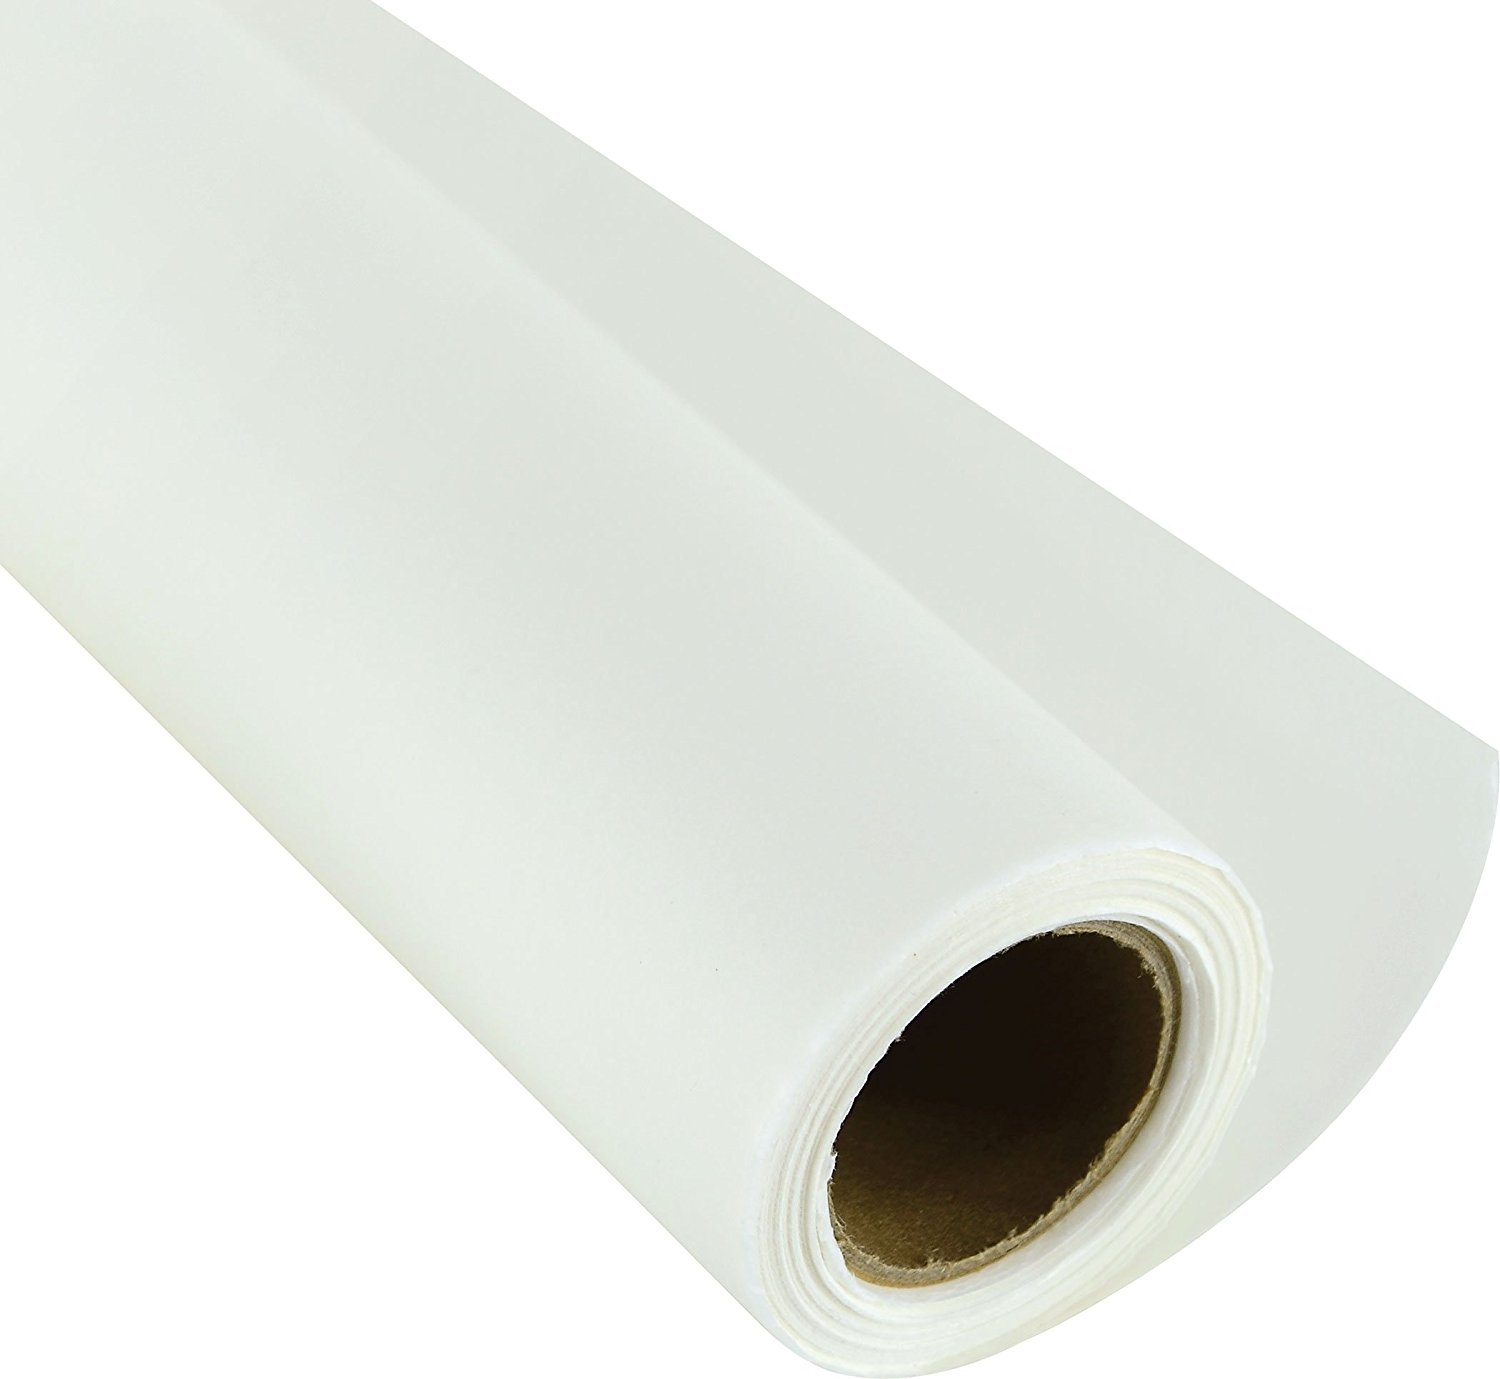 A photo of tracing paper, an essential item on any serious photographer's food photography equipment list